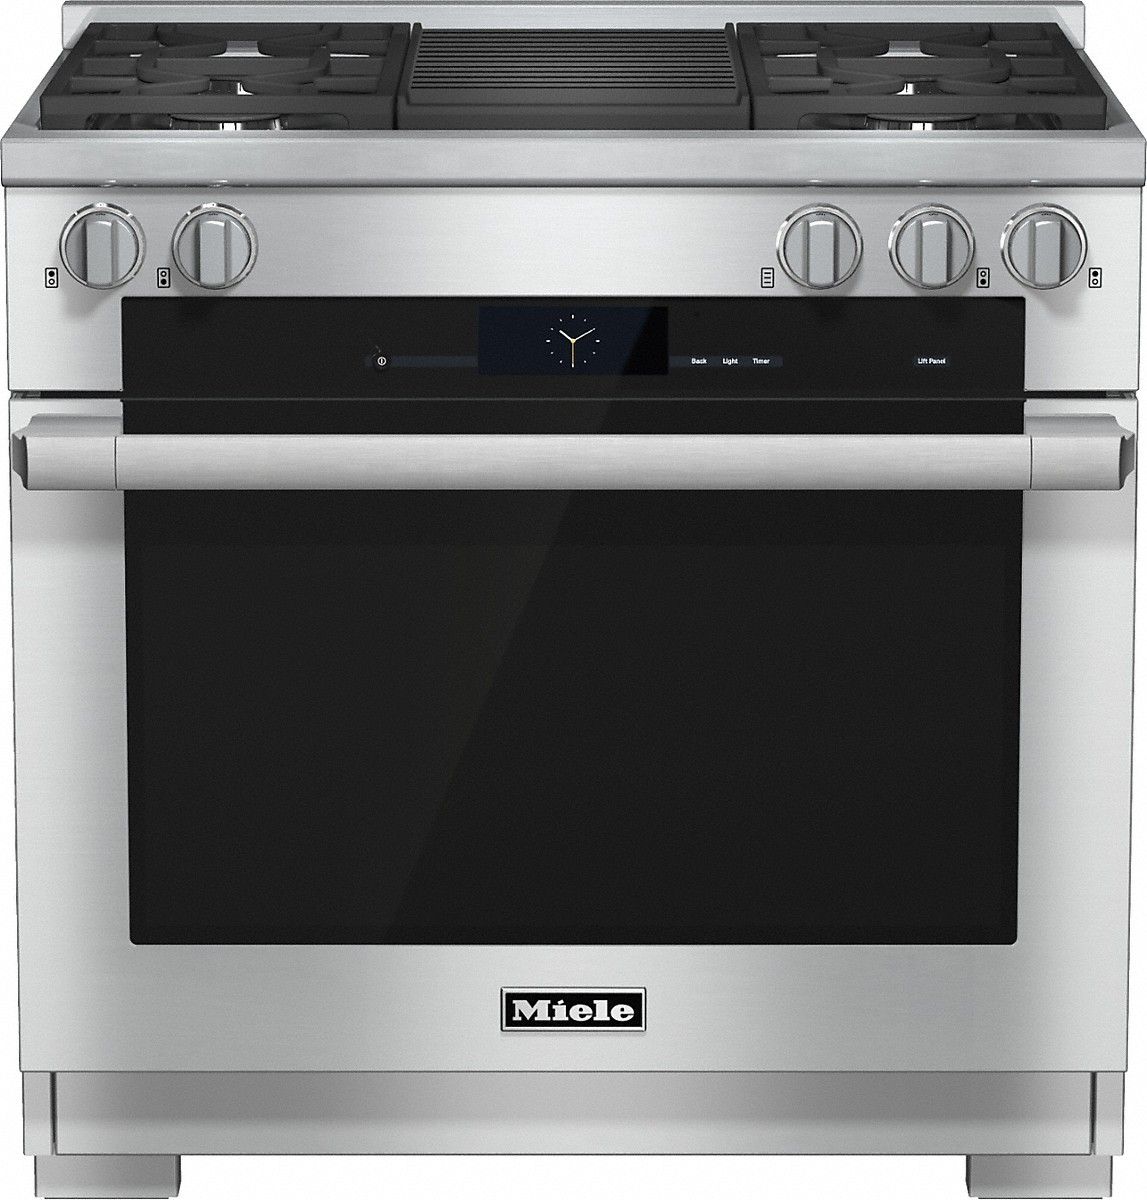 Miele 36 inch rangeDual Fuel with M Touch controls, Moisture Plus and M Pro dual stacked burners